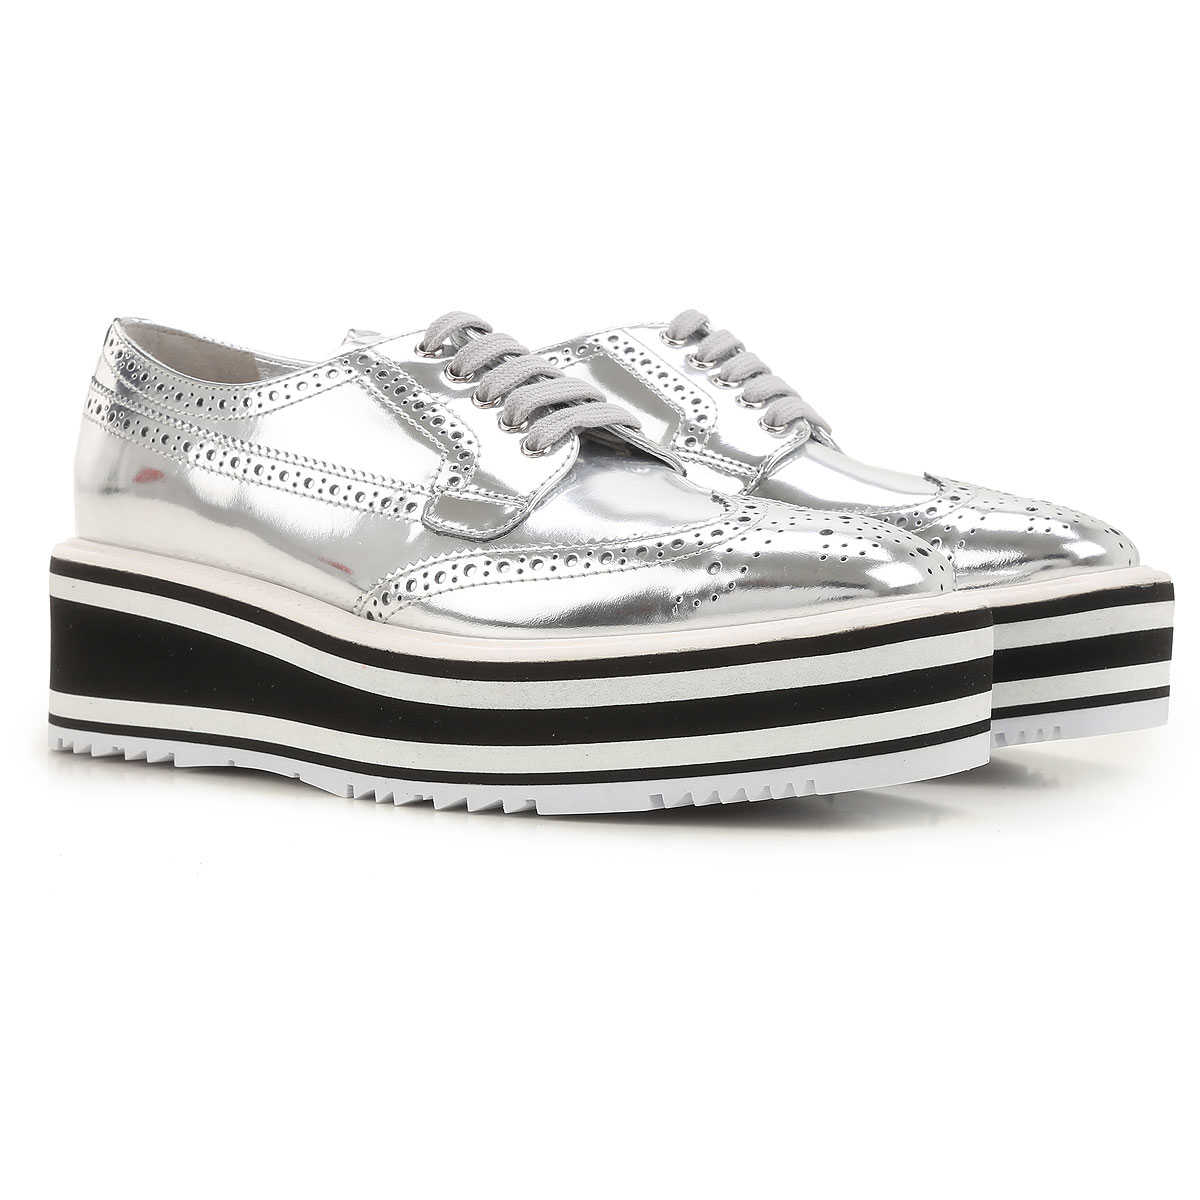 Prada Womens Shoes On Sale in Outlet Silver UK - GOOFASH